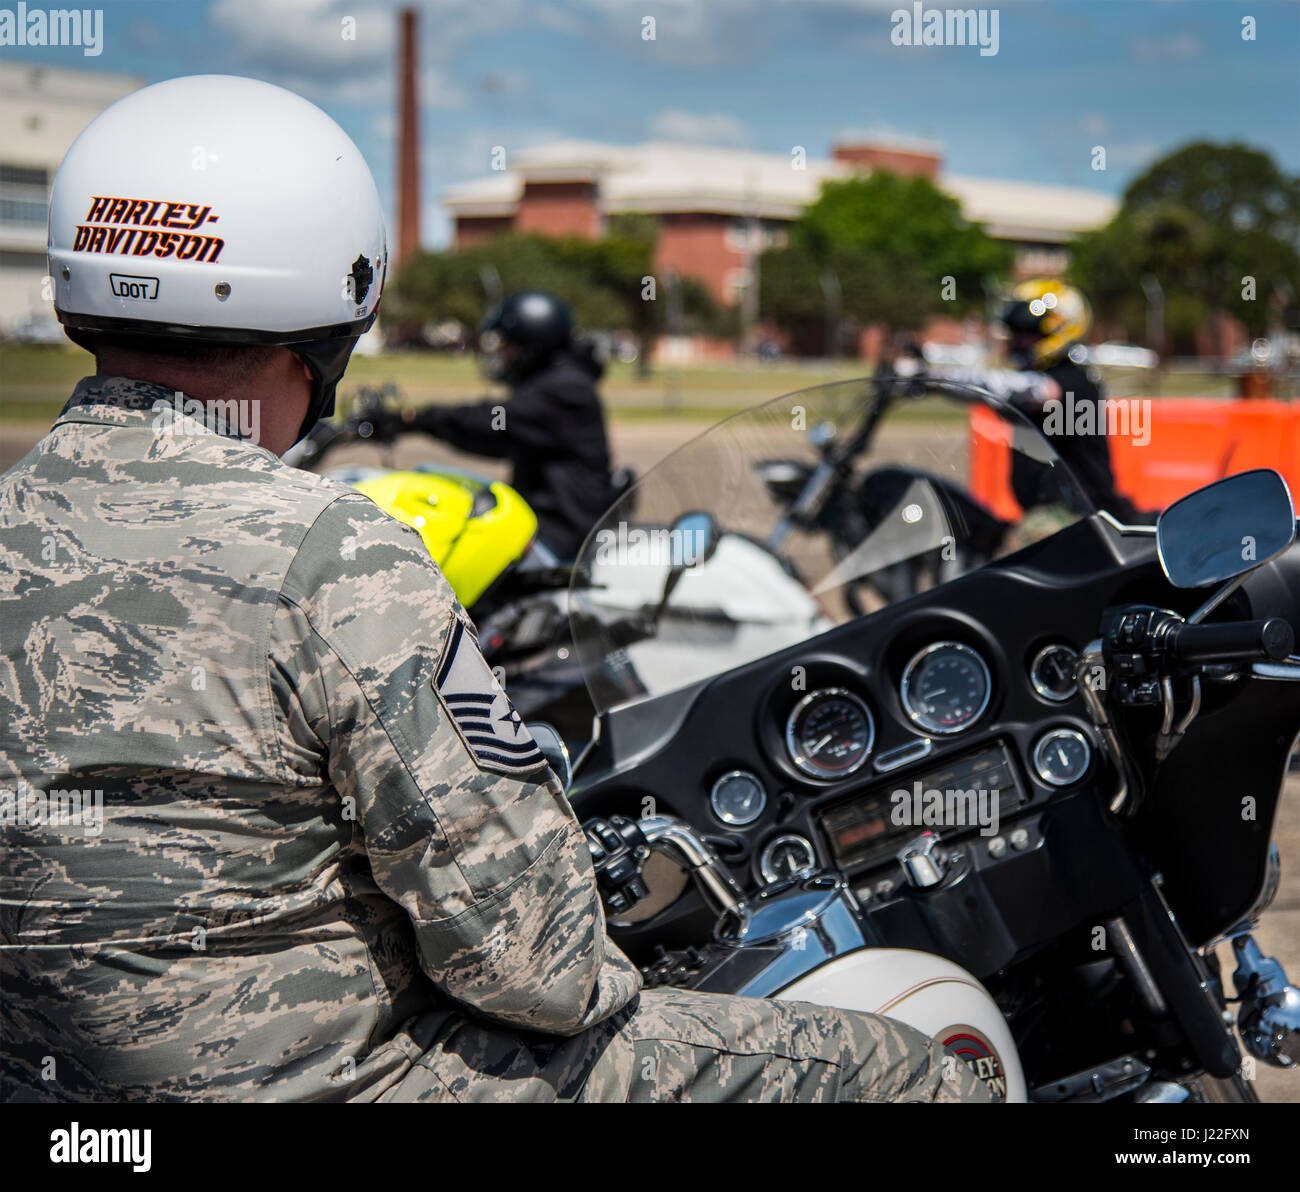 stock top wearing watches bikers the beach main down hat during motorcycles week biker bike daytona street march photo annual in of parade a